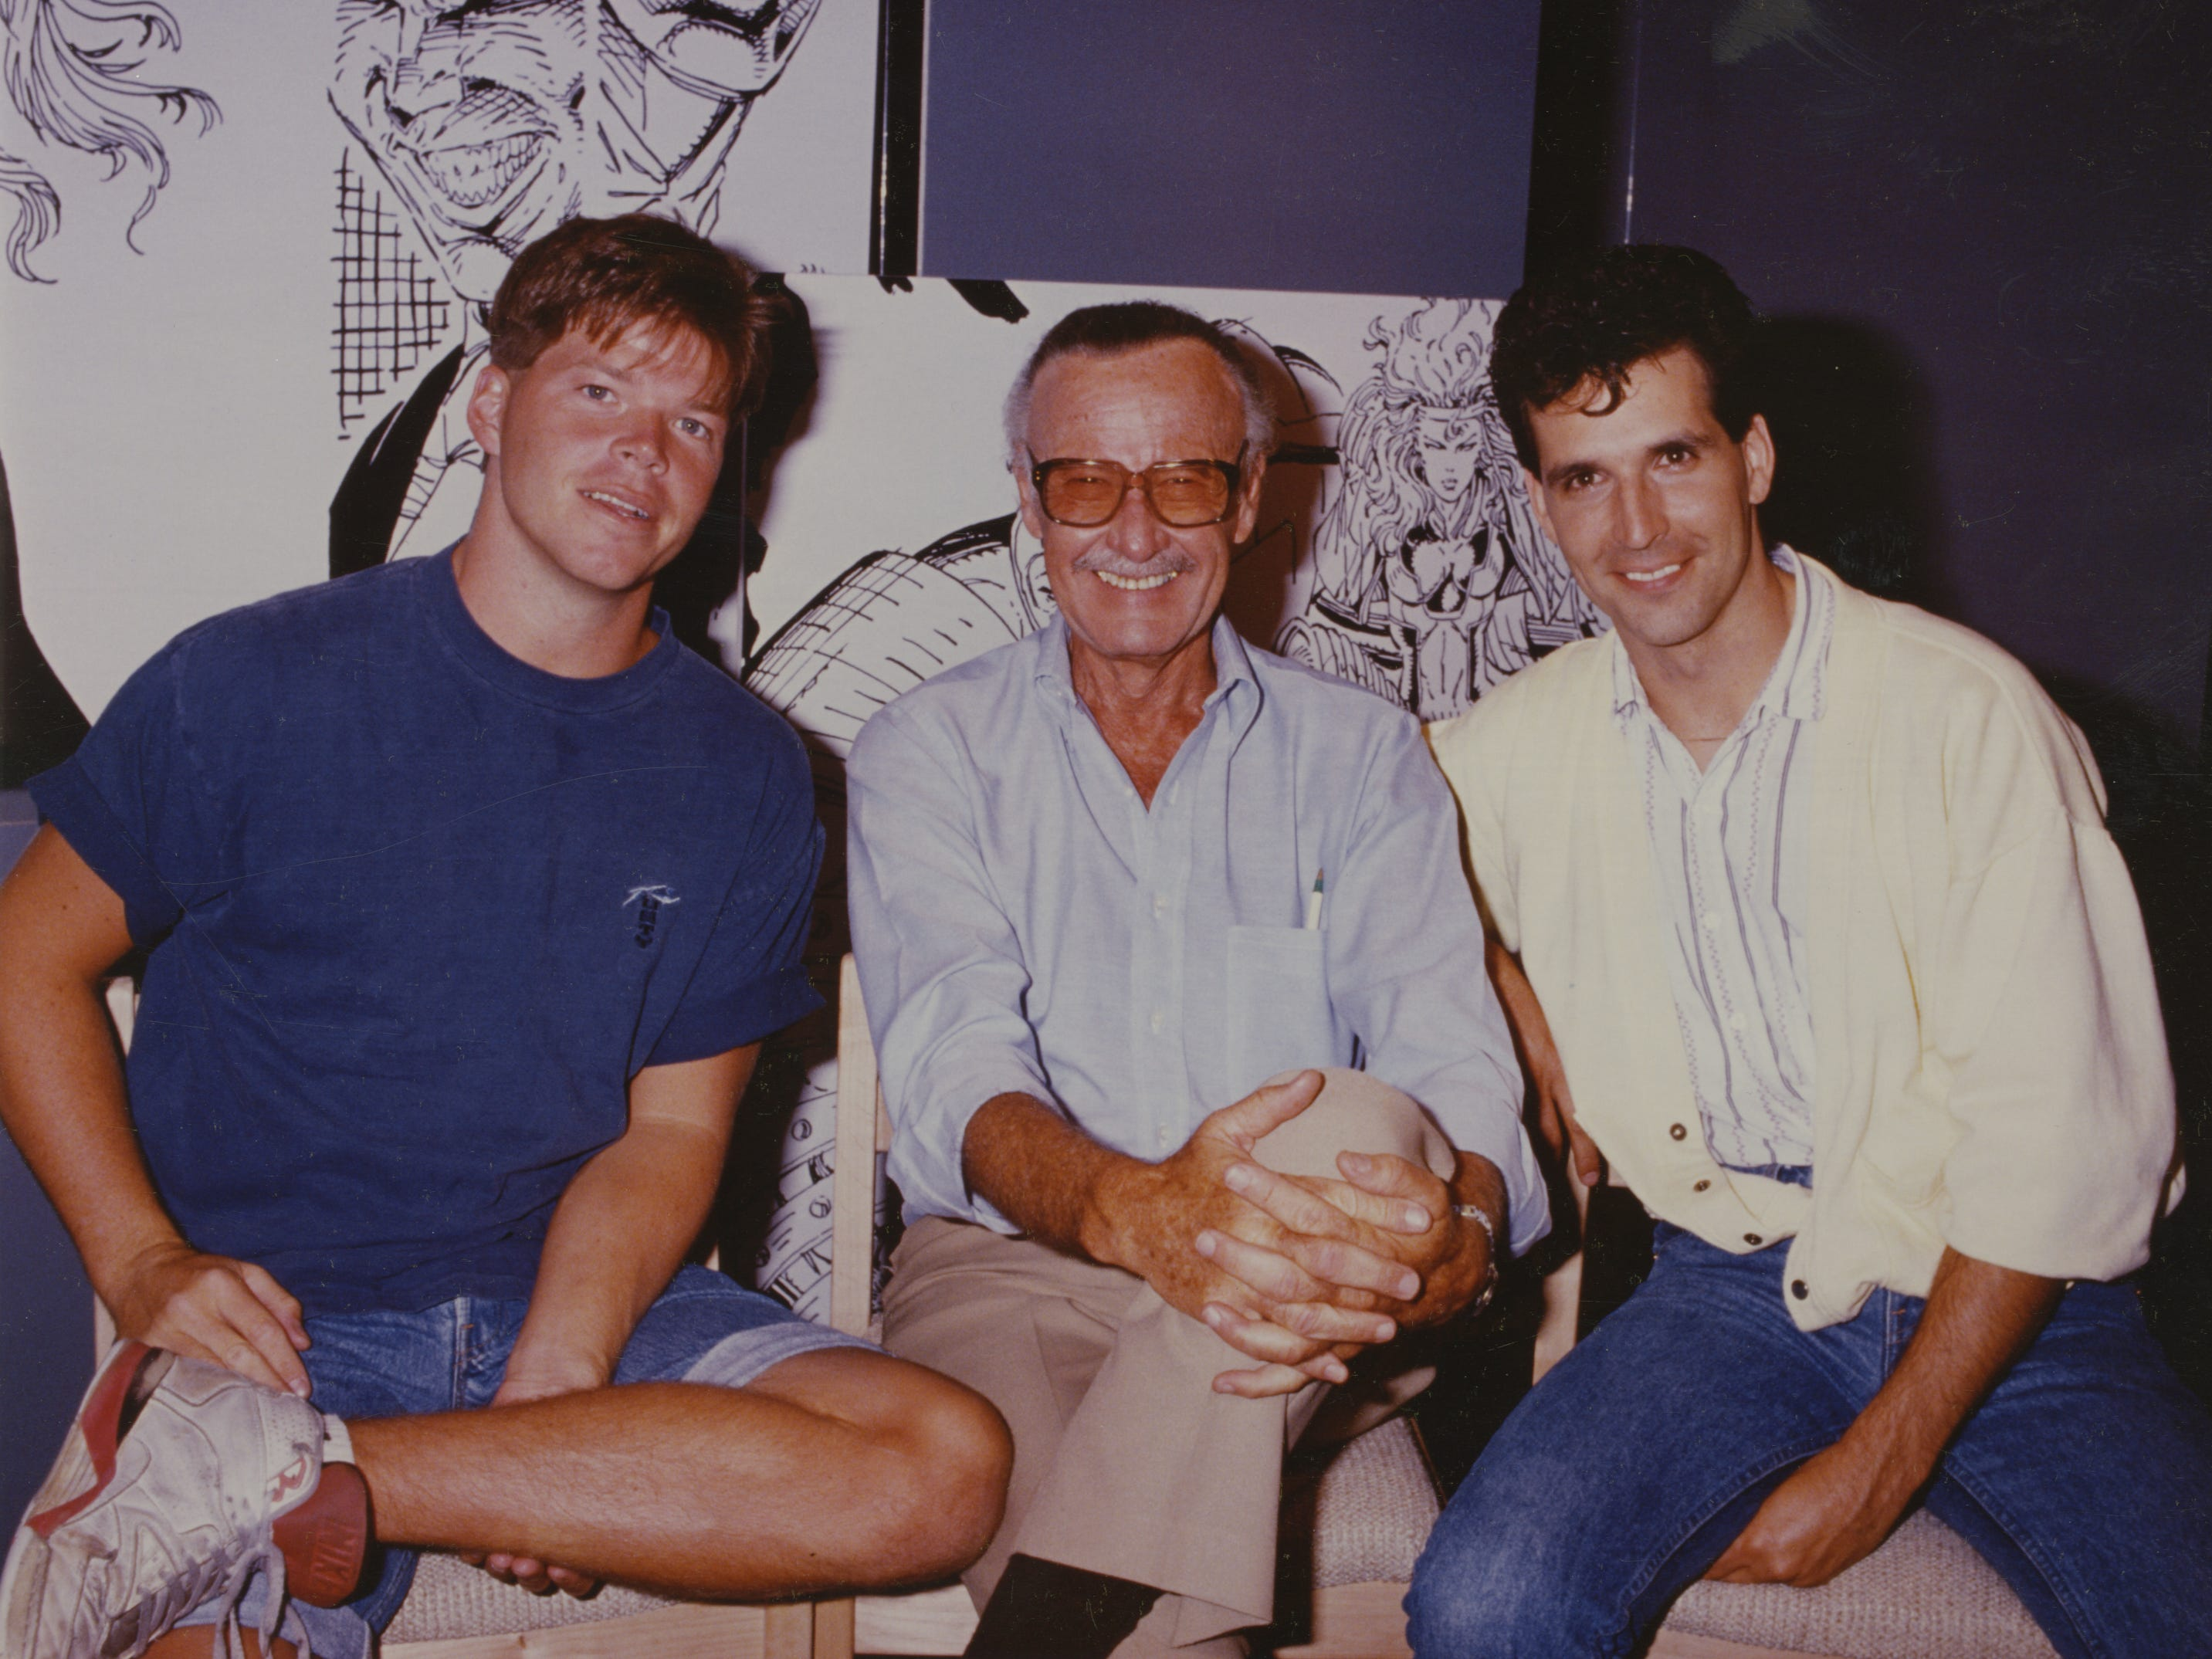 (From left) Rob Liefeld, Stan Lee and Todd McFarlane.